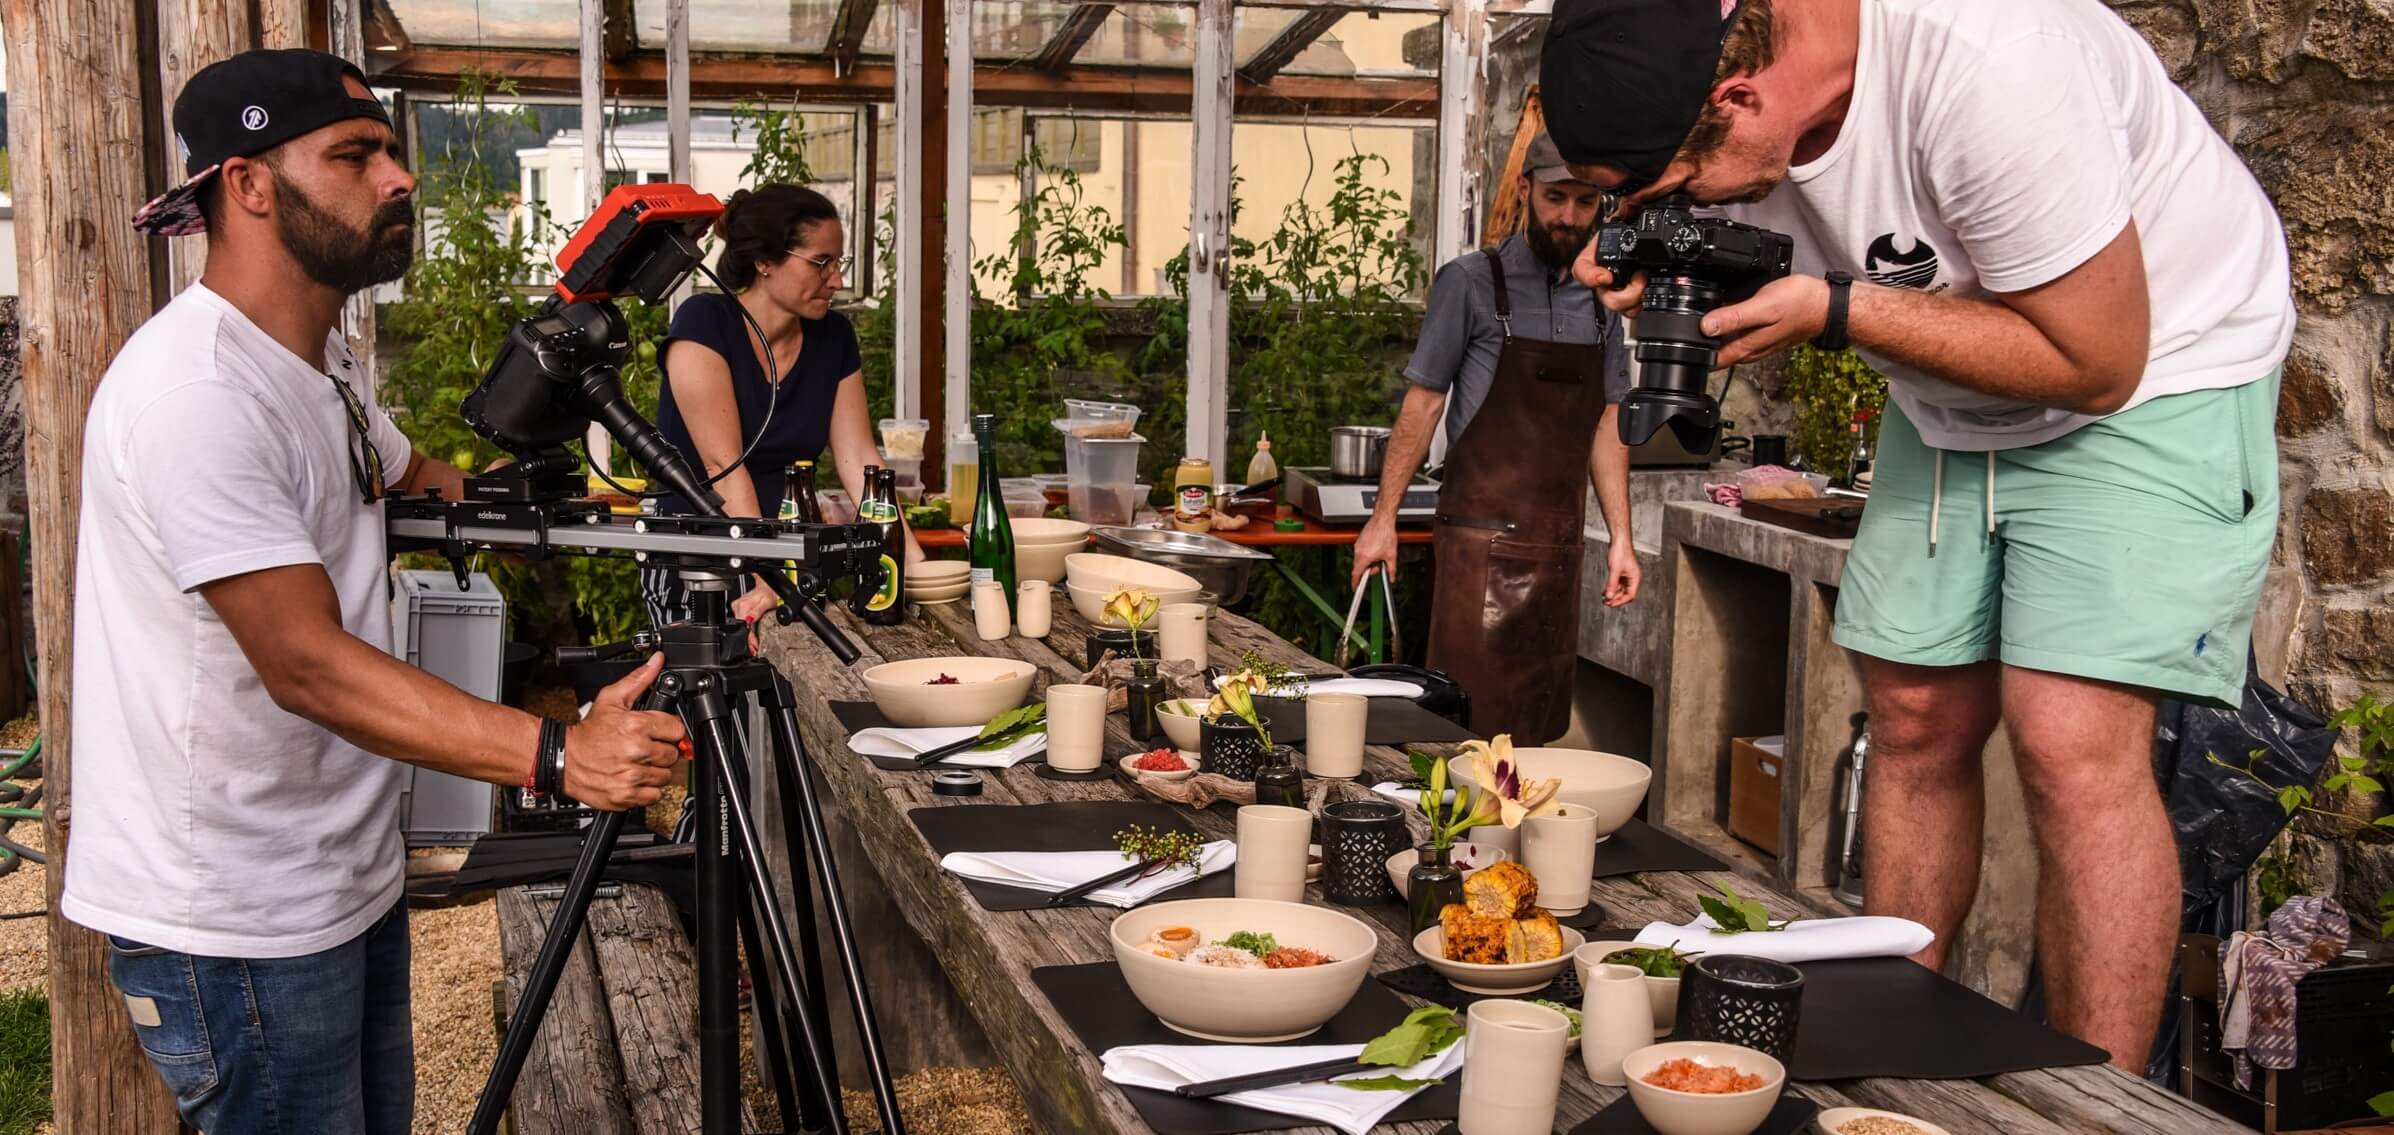 Grill Fotoshooting behind the scenes Wunschleder HOME